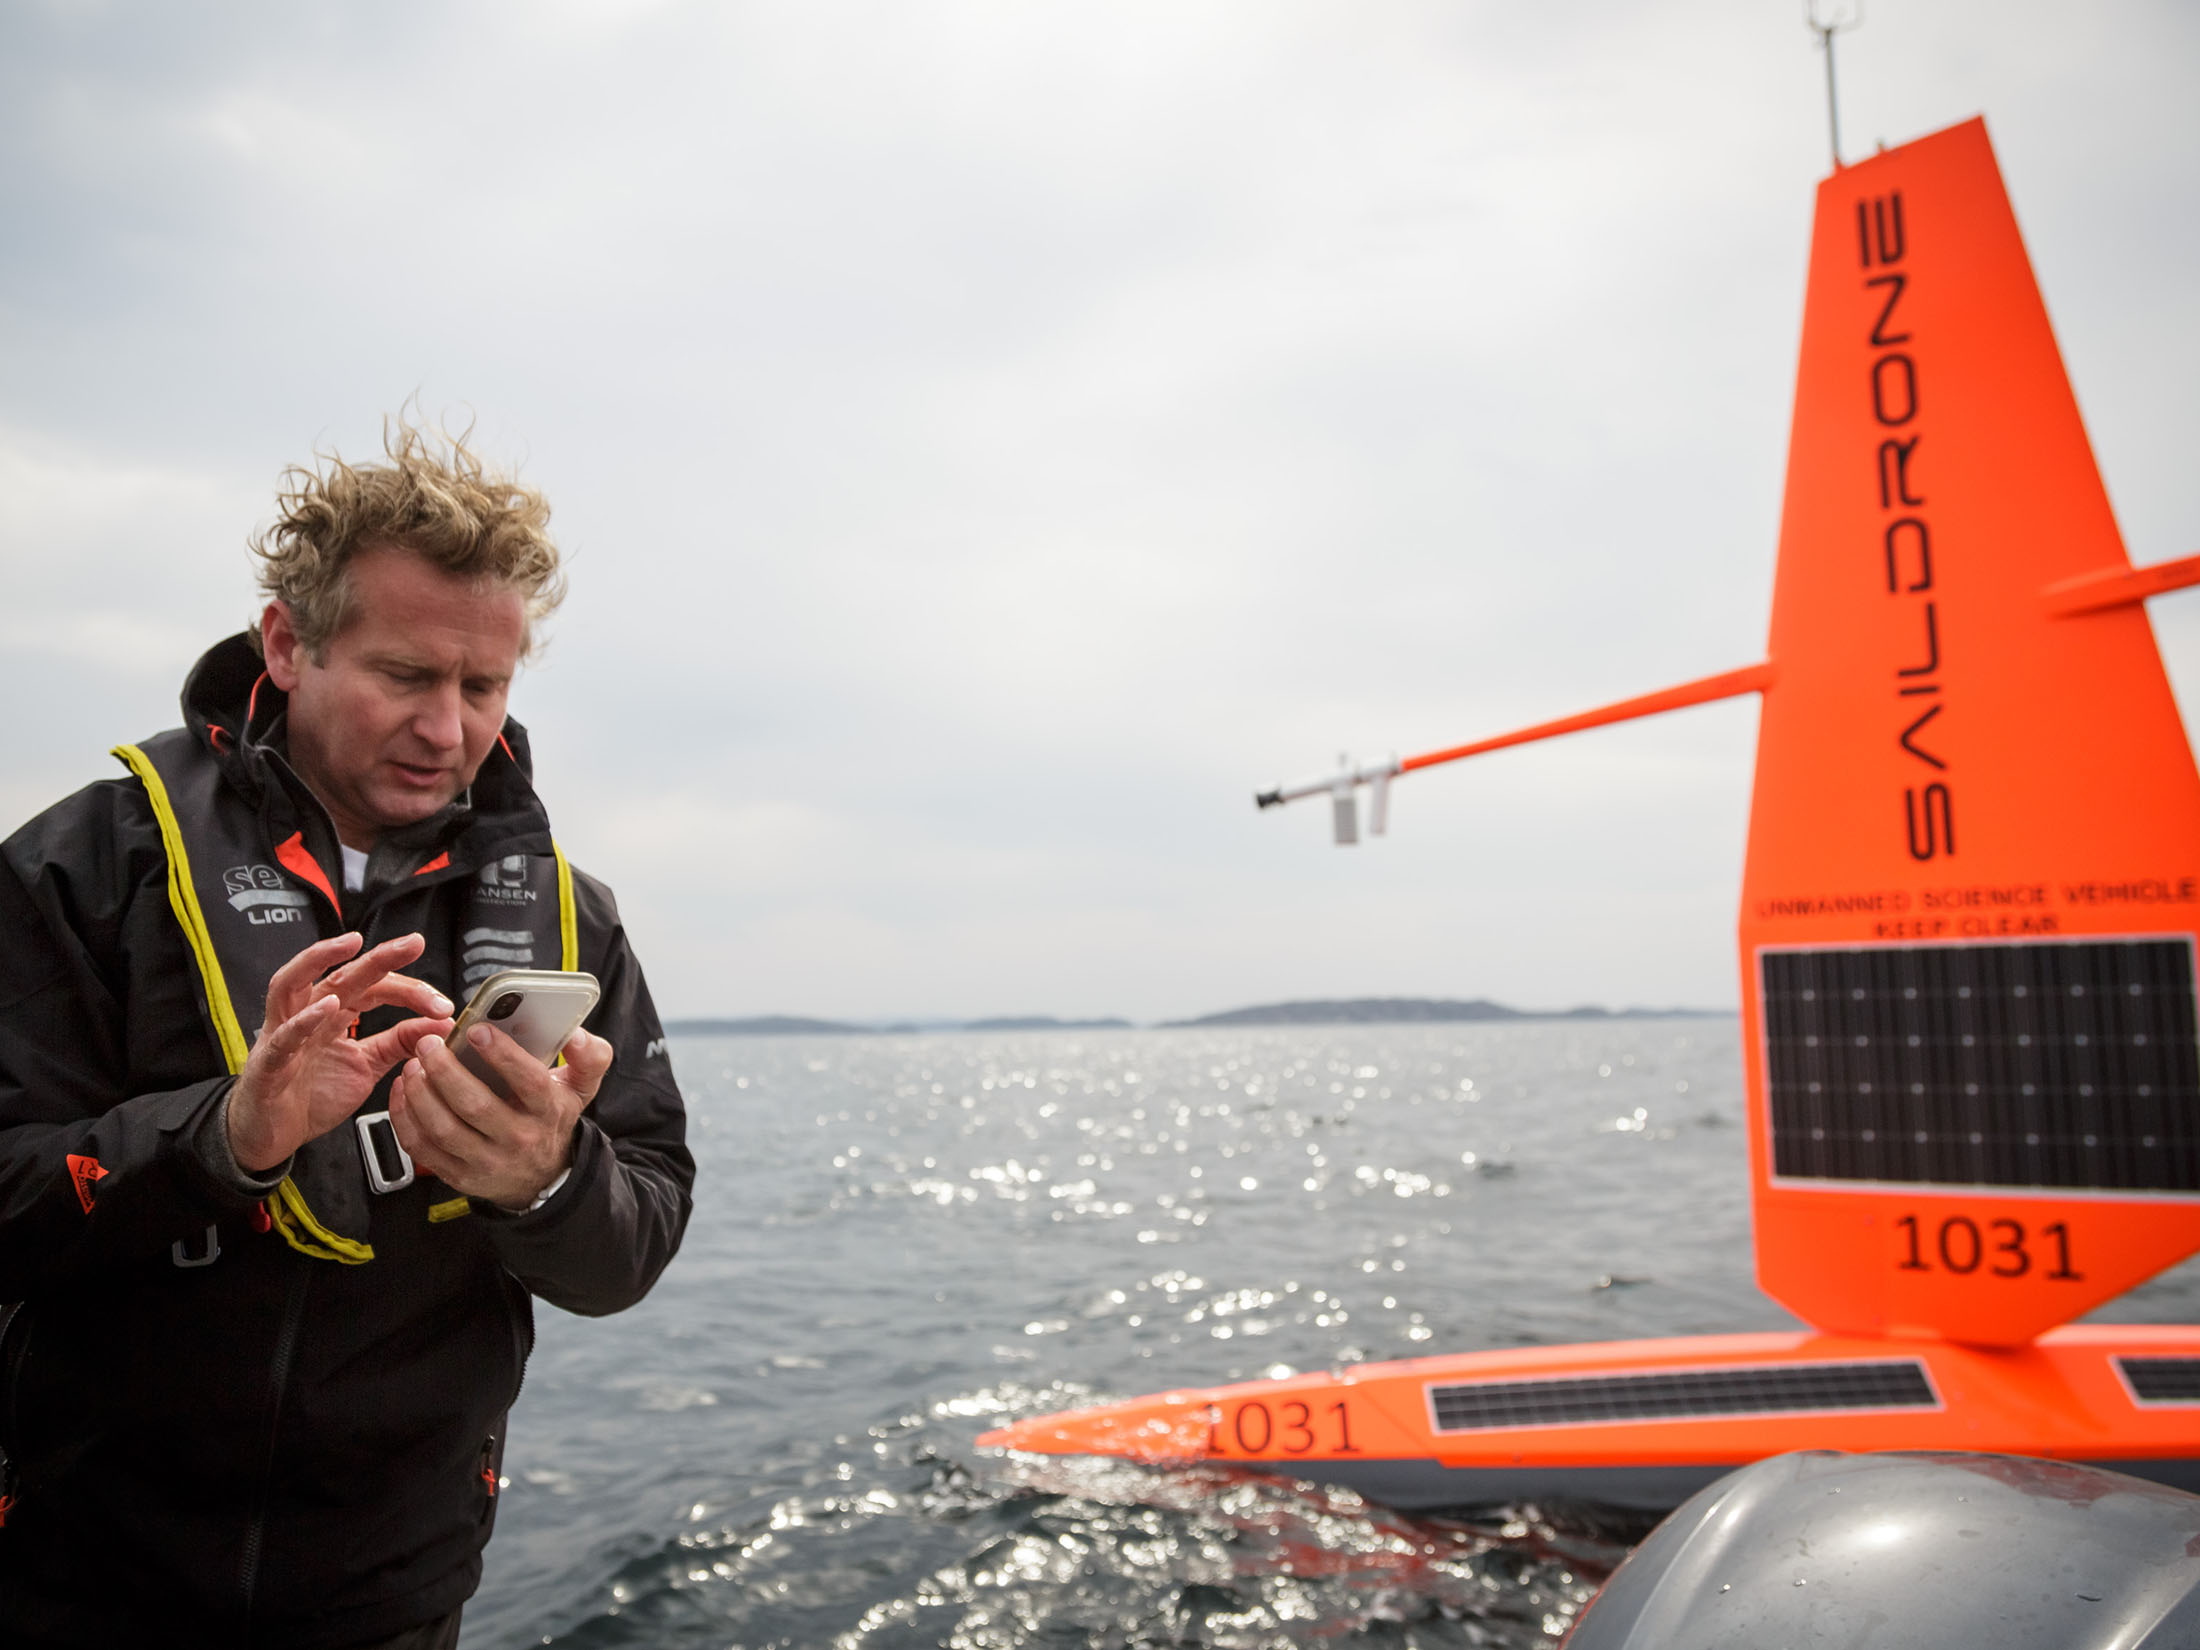 Saildrone founder & CEO Richard Jenkins deploys saildrone